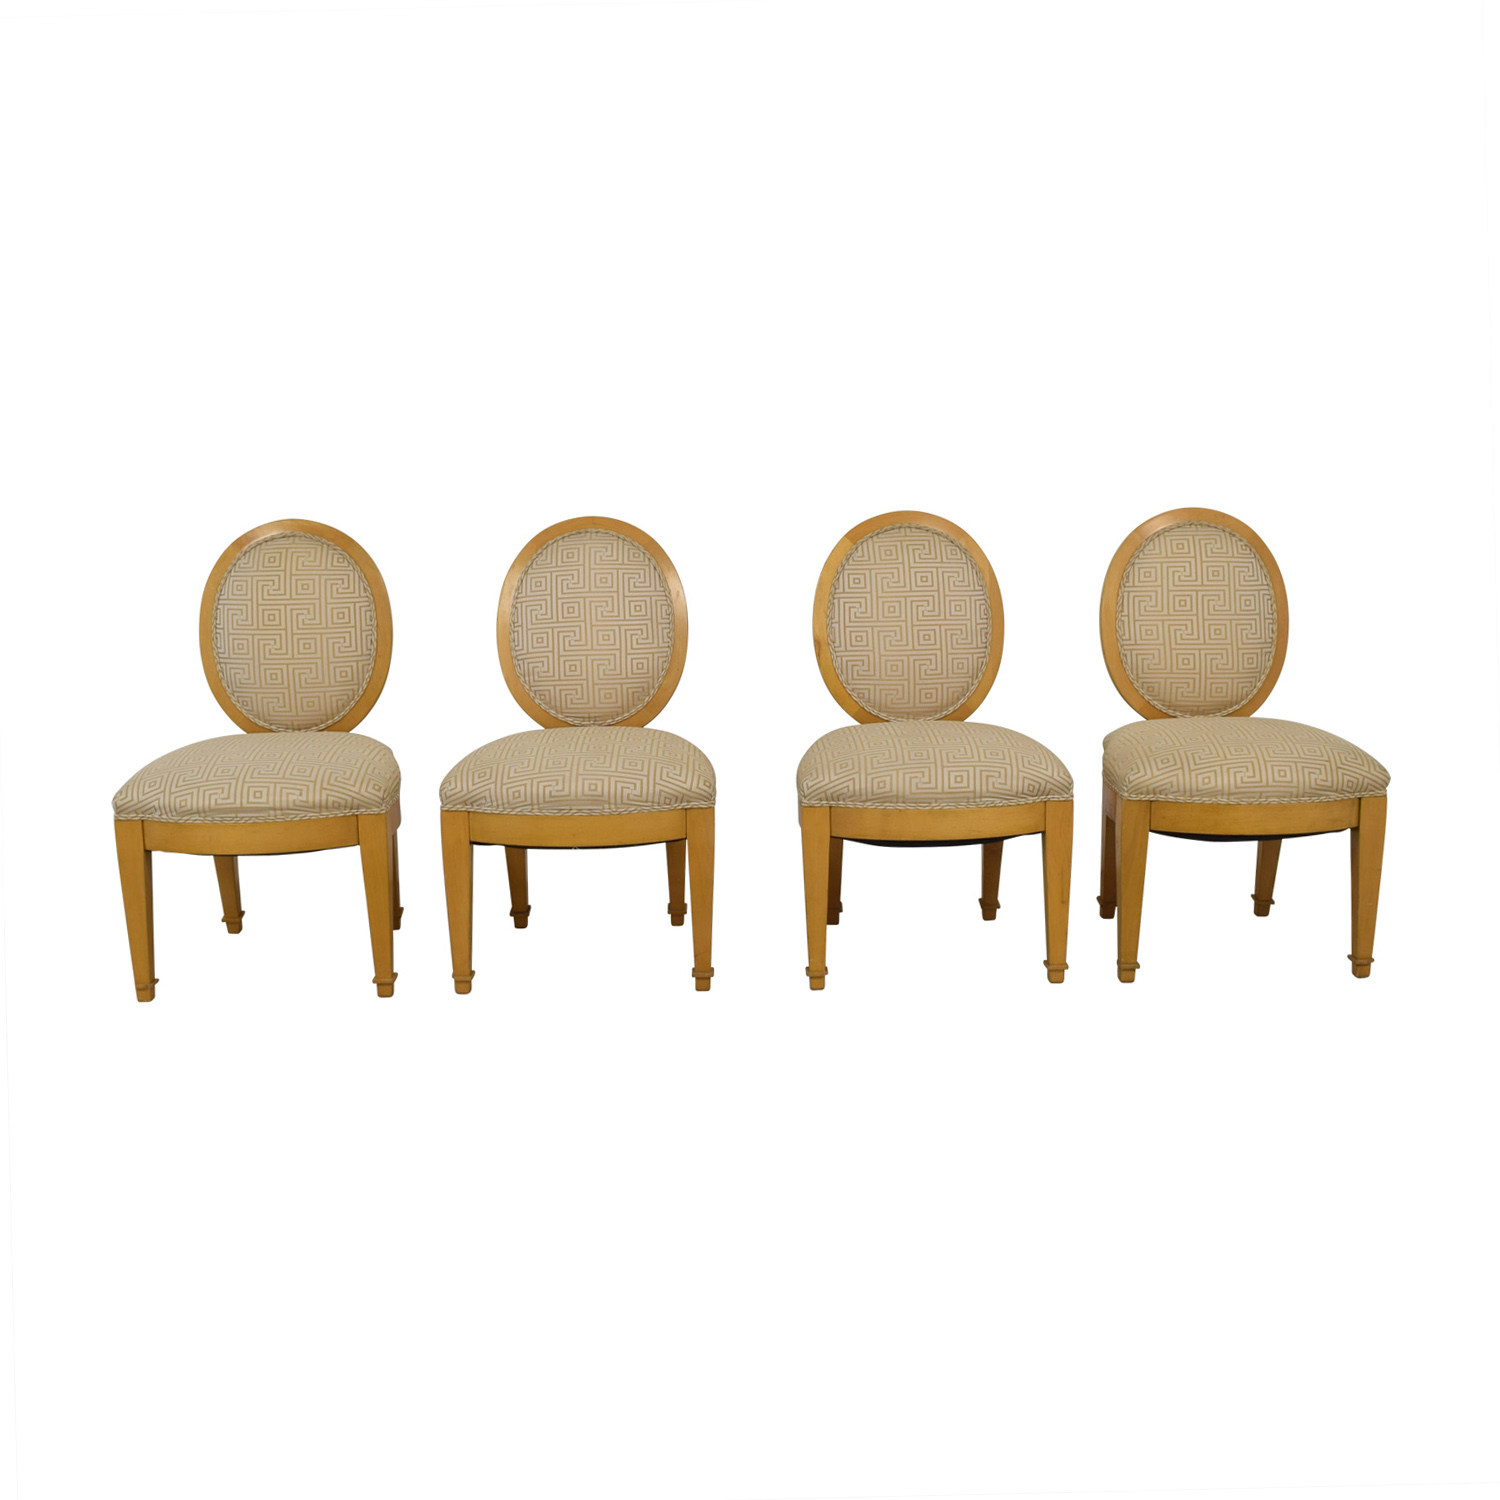 Furniture Masters Furniture Masters Tan and Beige Upholstered Dining Chairs discount